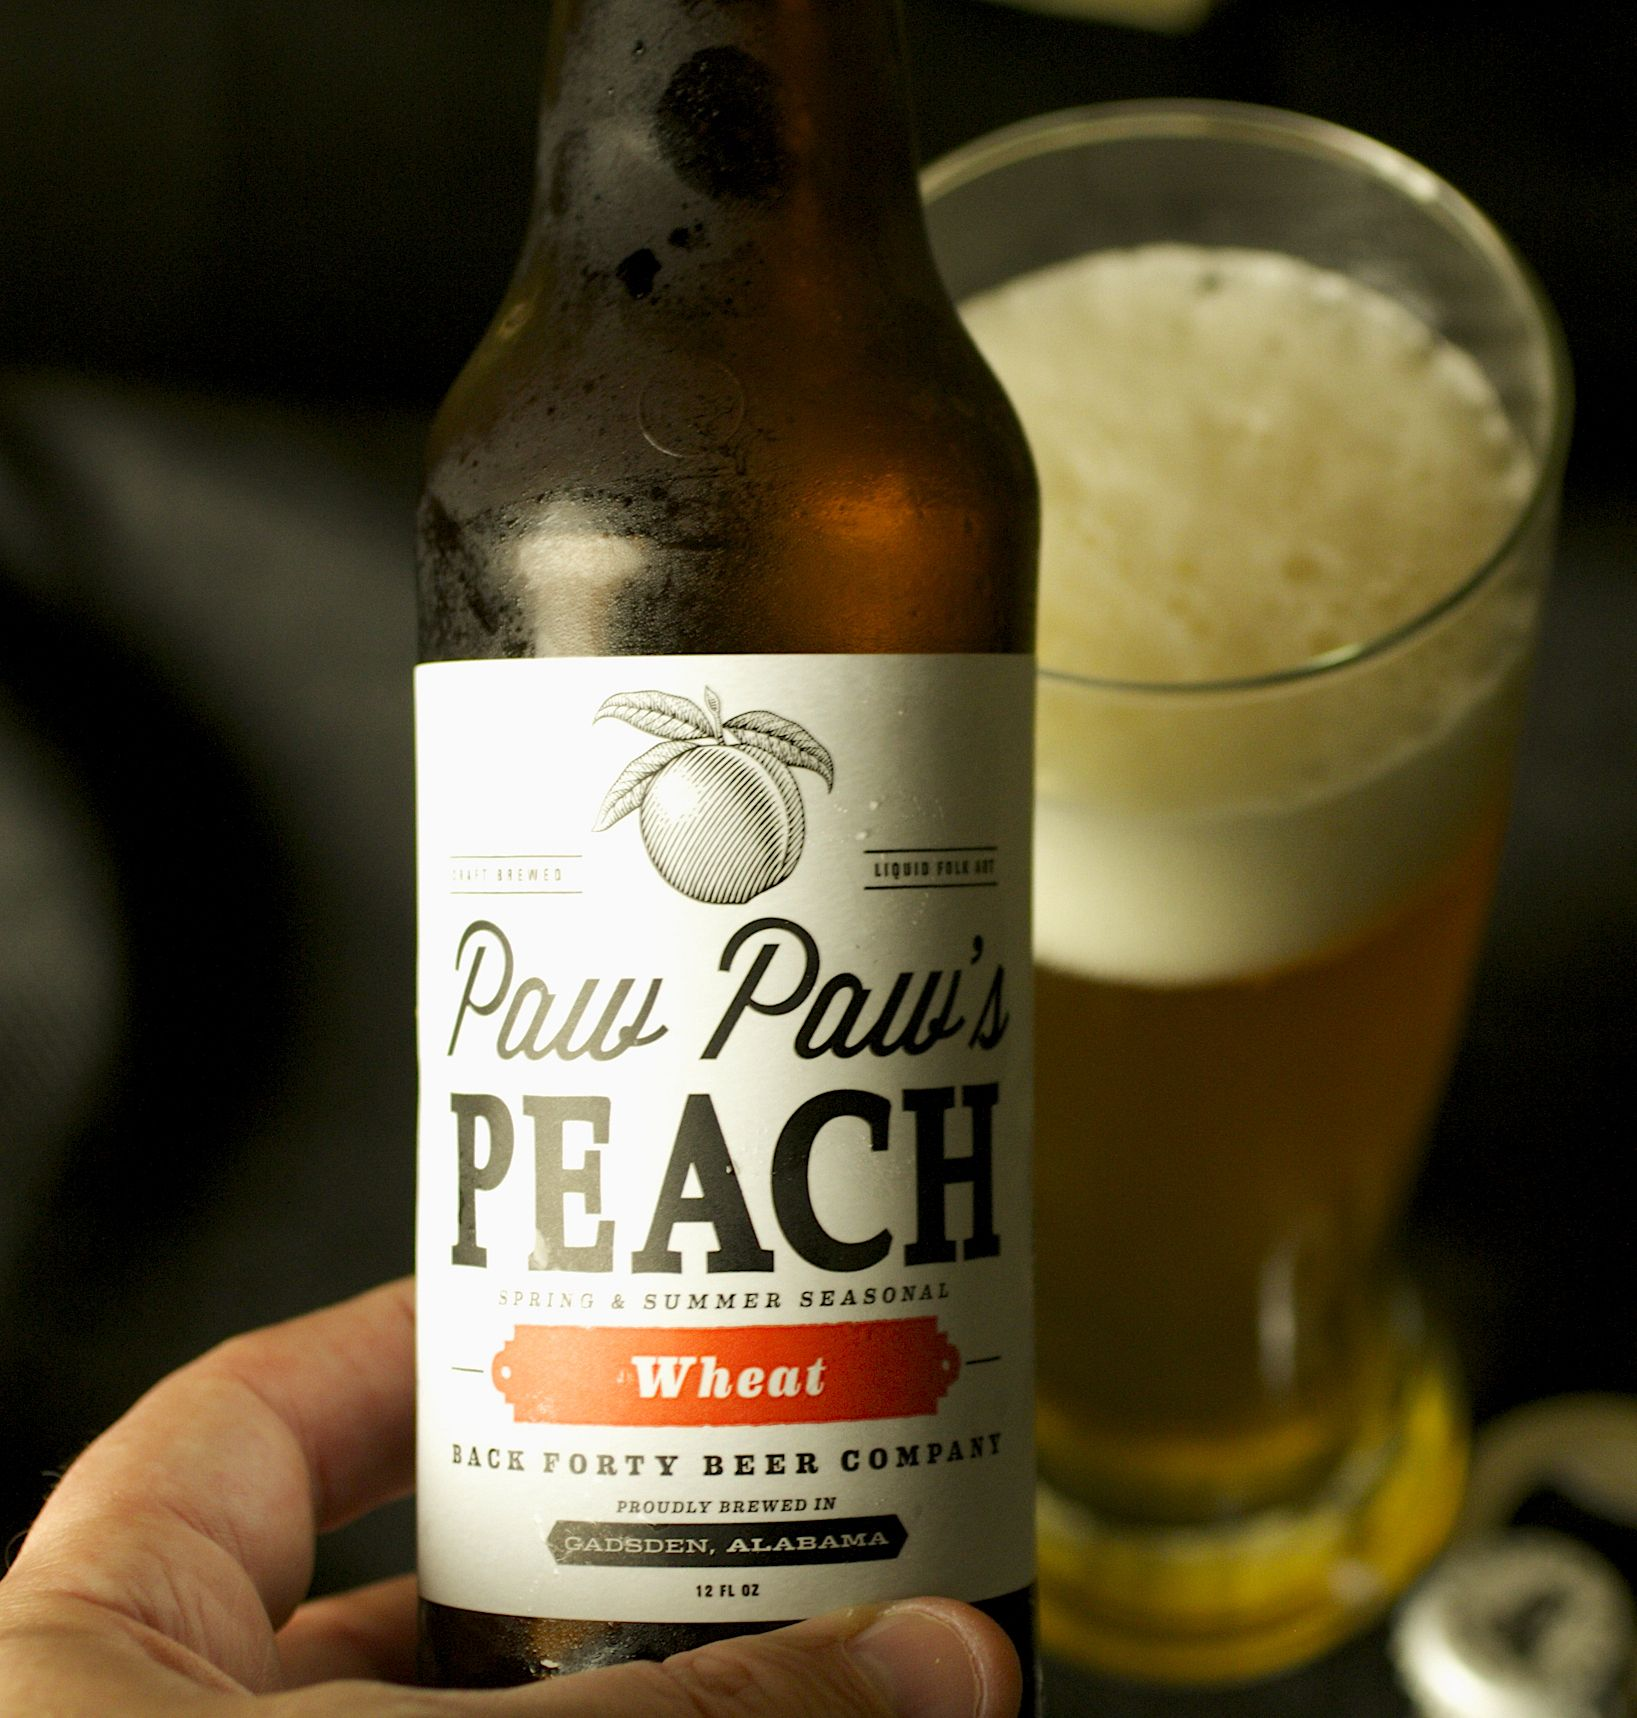 Paw Paws Peach from Back Forty Brewing Company